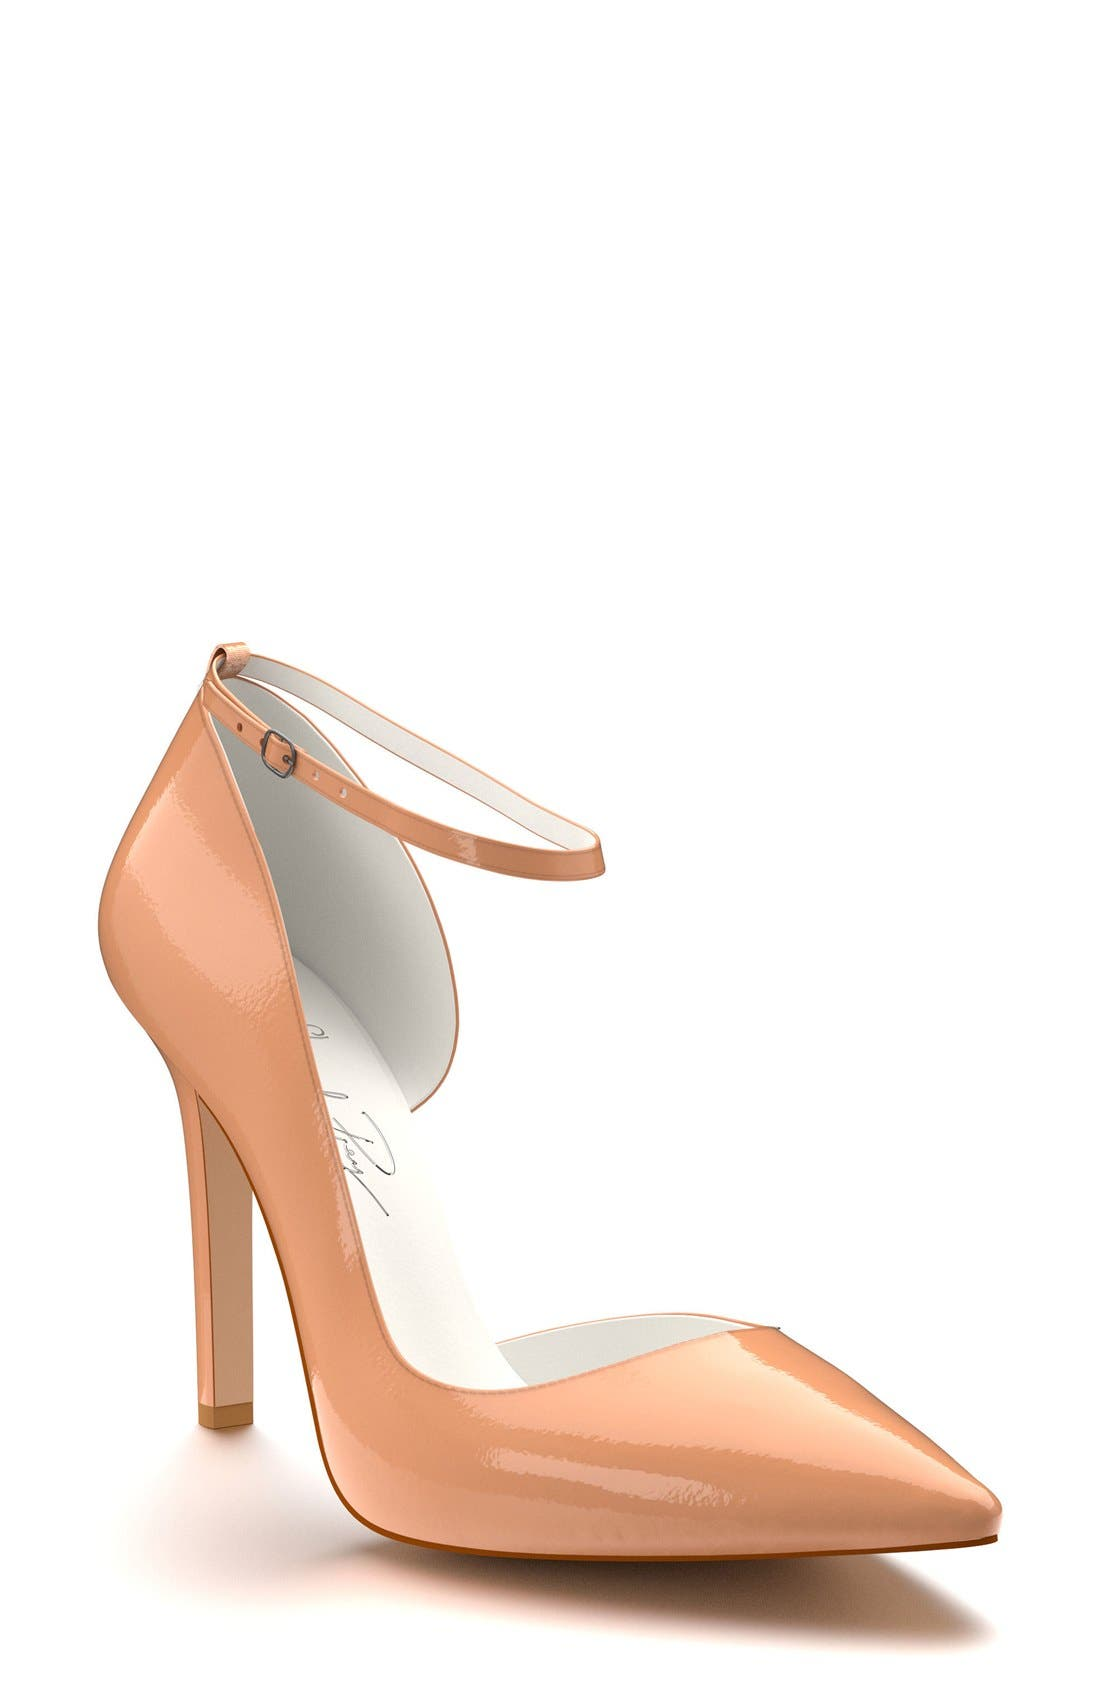 Main Image - Shoes of Prey Ankle Strap d'Orsay Pump (Women)